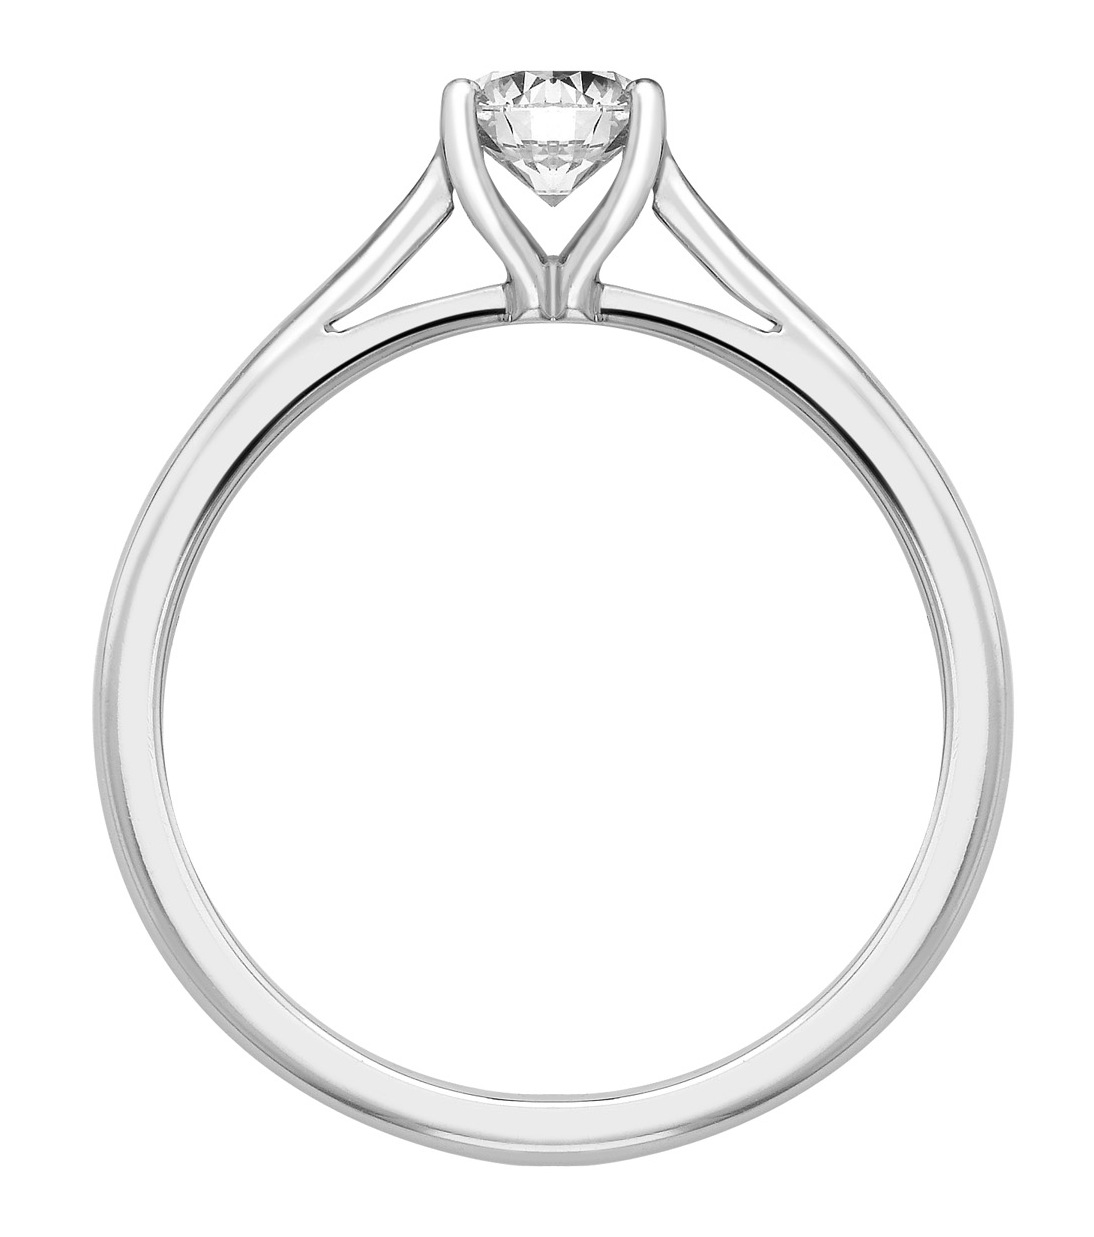 Round Four Claw White Gold 950 Engagement Ring GRC783 Image 2